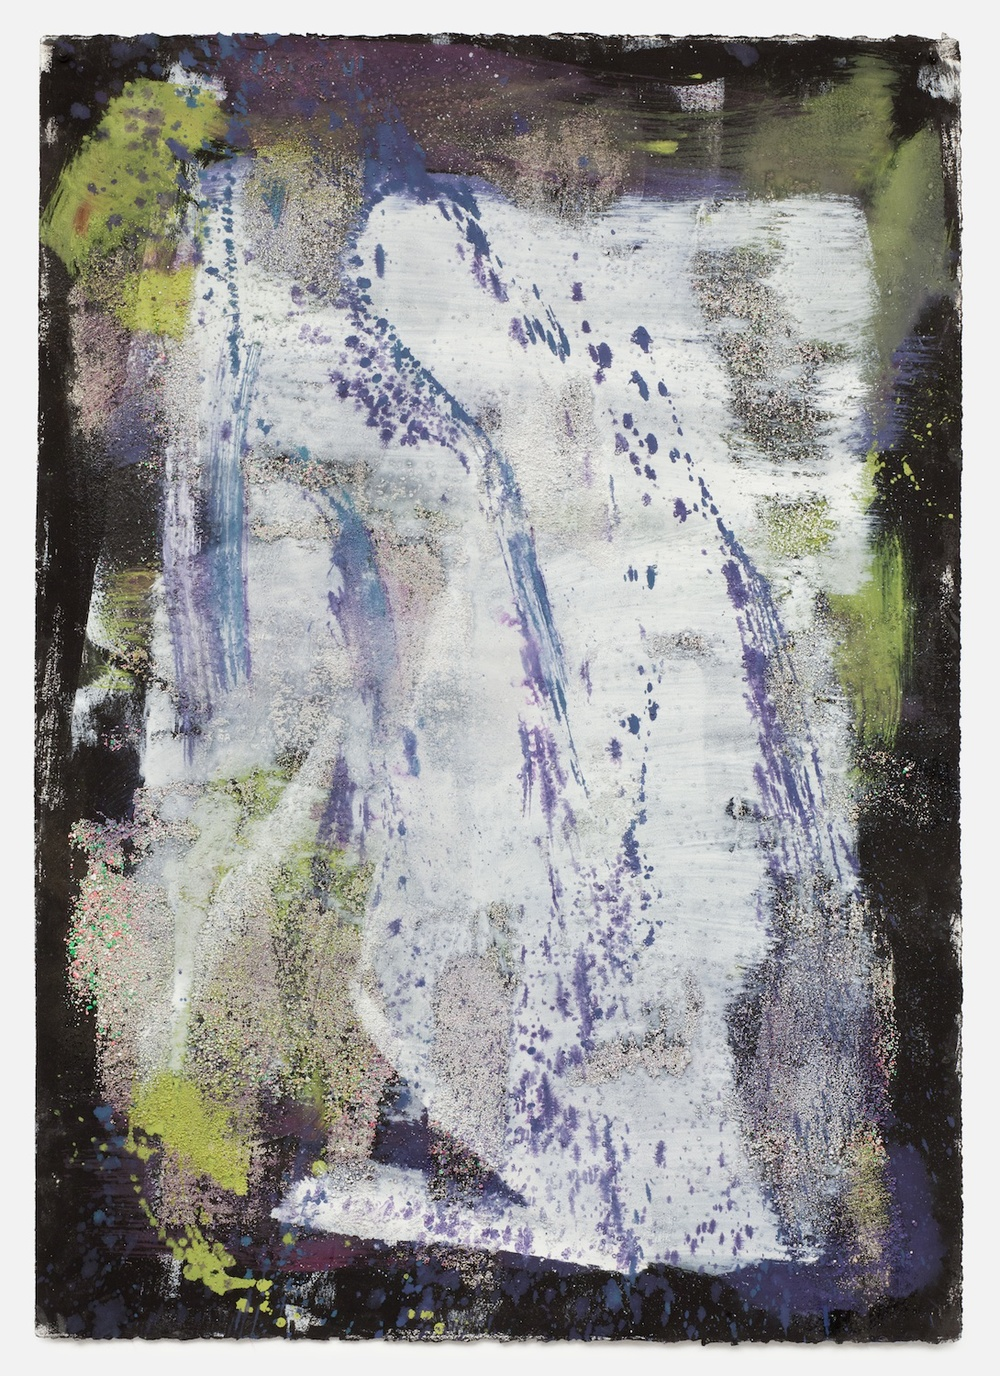 Jon Pestoni  Untitled  2013 Oil and mixed media on paper 40h x 30w in JP145